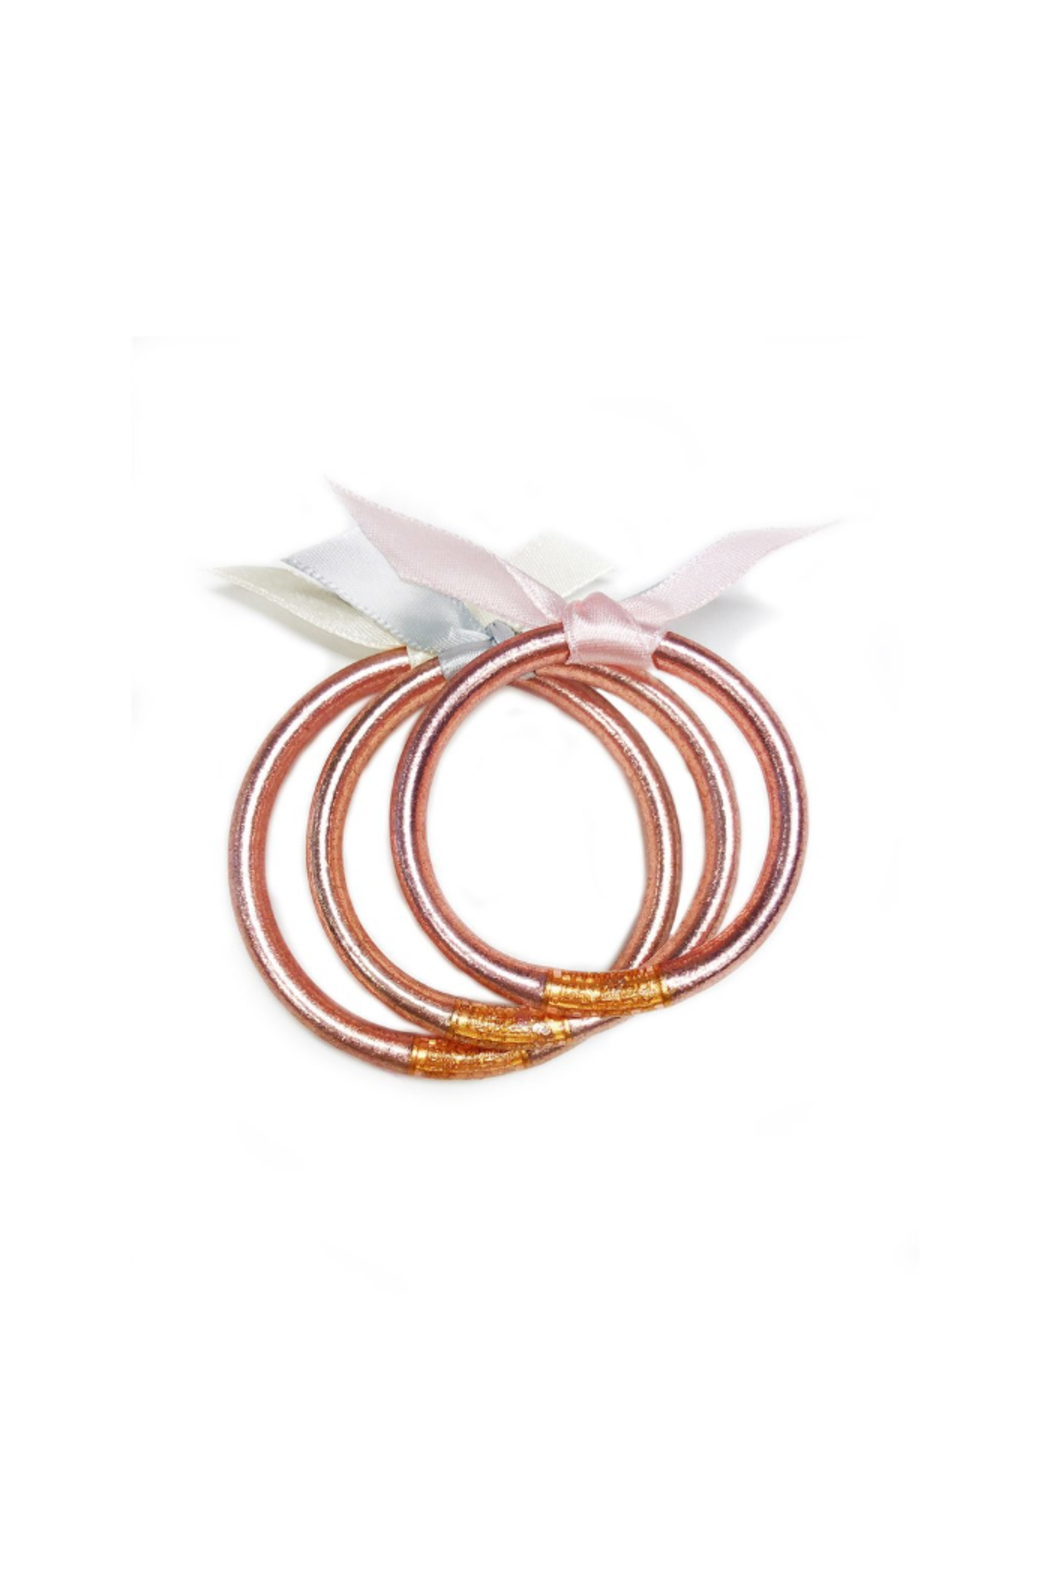 The Birds Nest ROSE GOLD ALL WEATHER BANGLES FOR BABIES-SMALL - Front Cropped Image